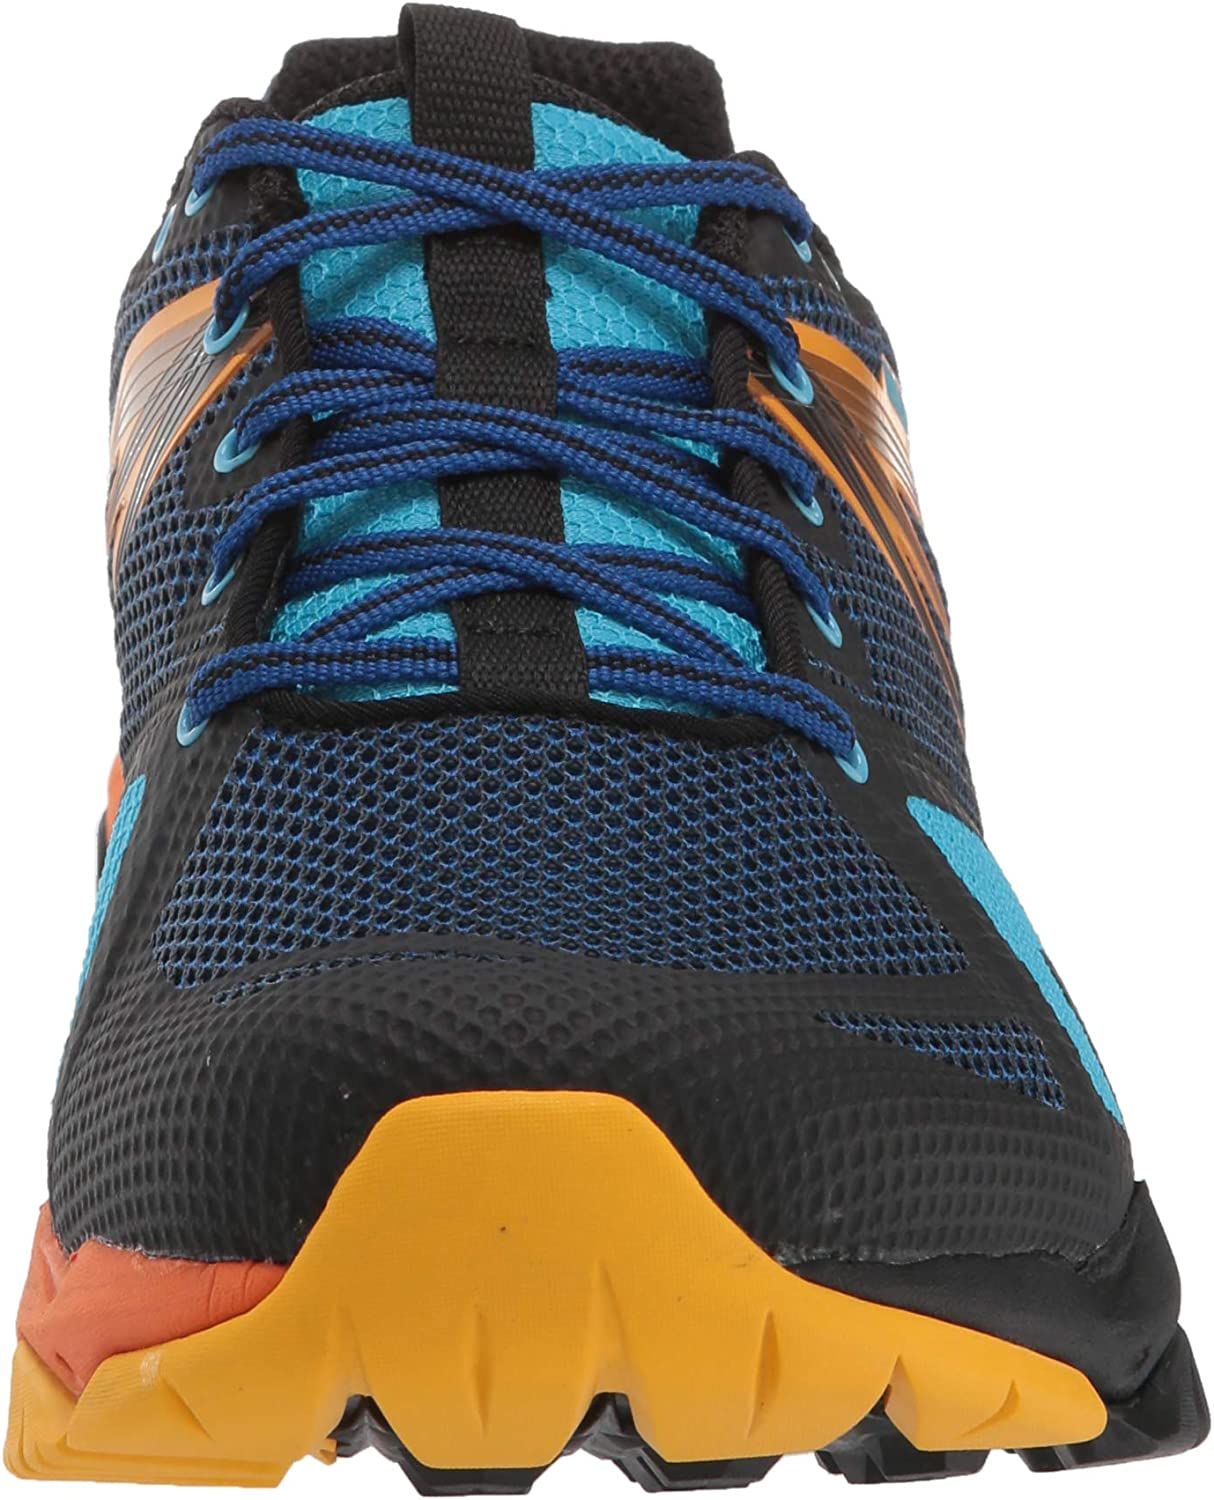 Merrell Men's Mqm Flex 39S Leisure and Hiking Shoes Cobalt